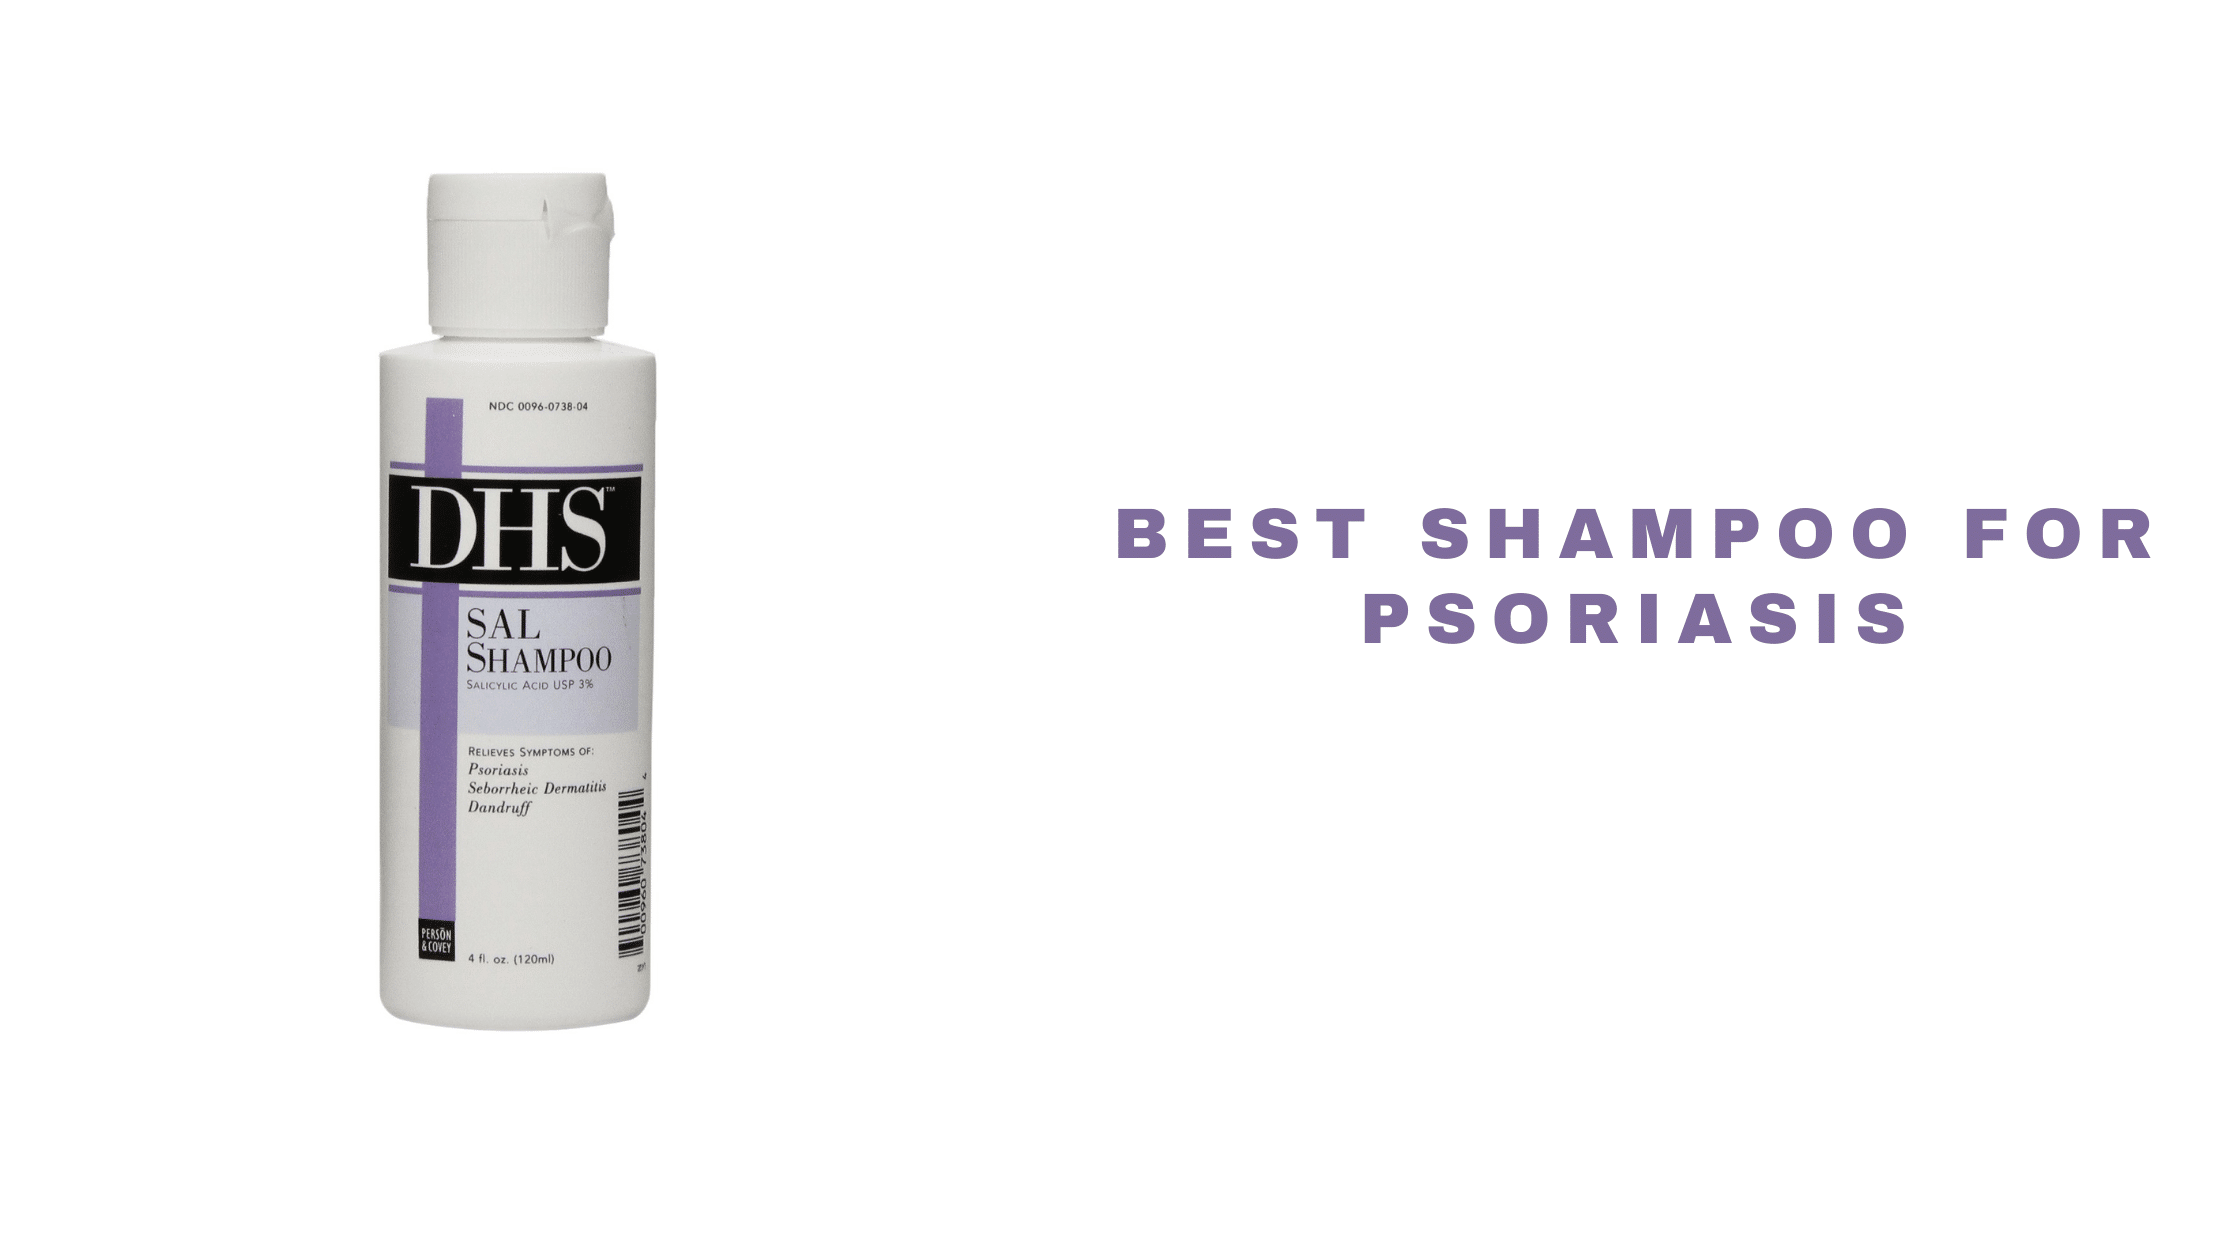 Best Shampoo For Psoriasis 2021